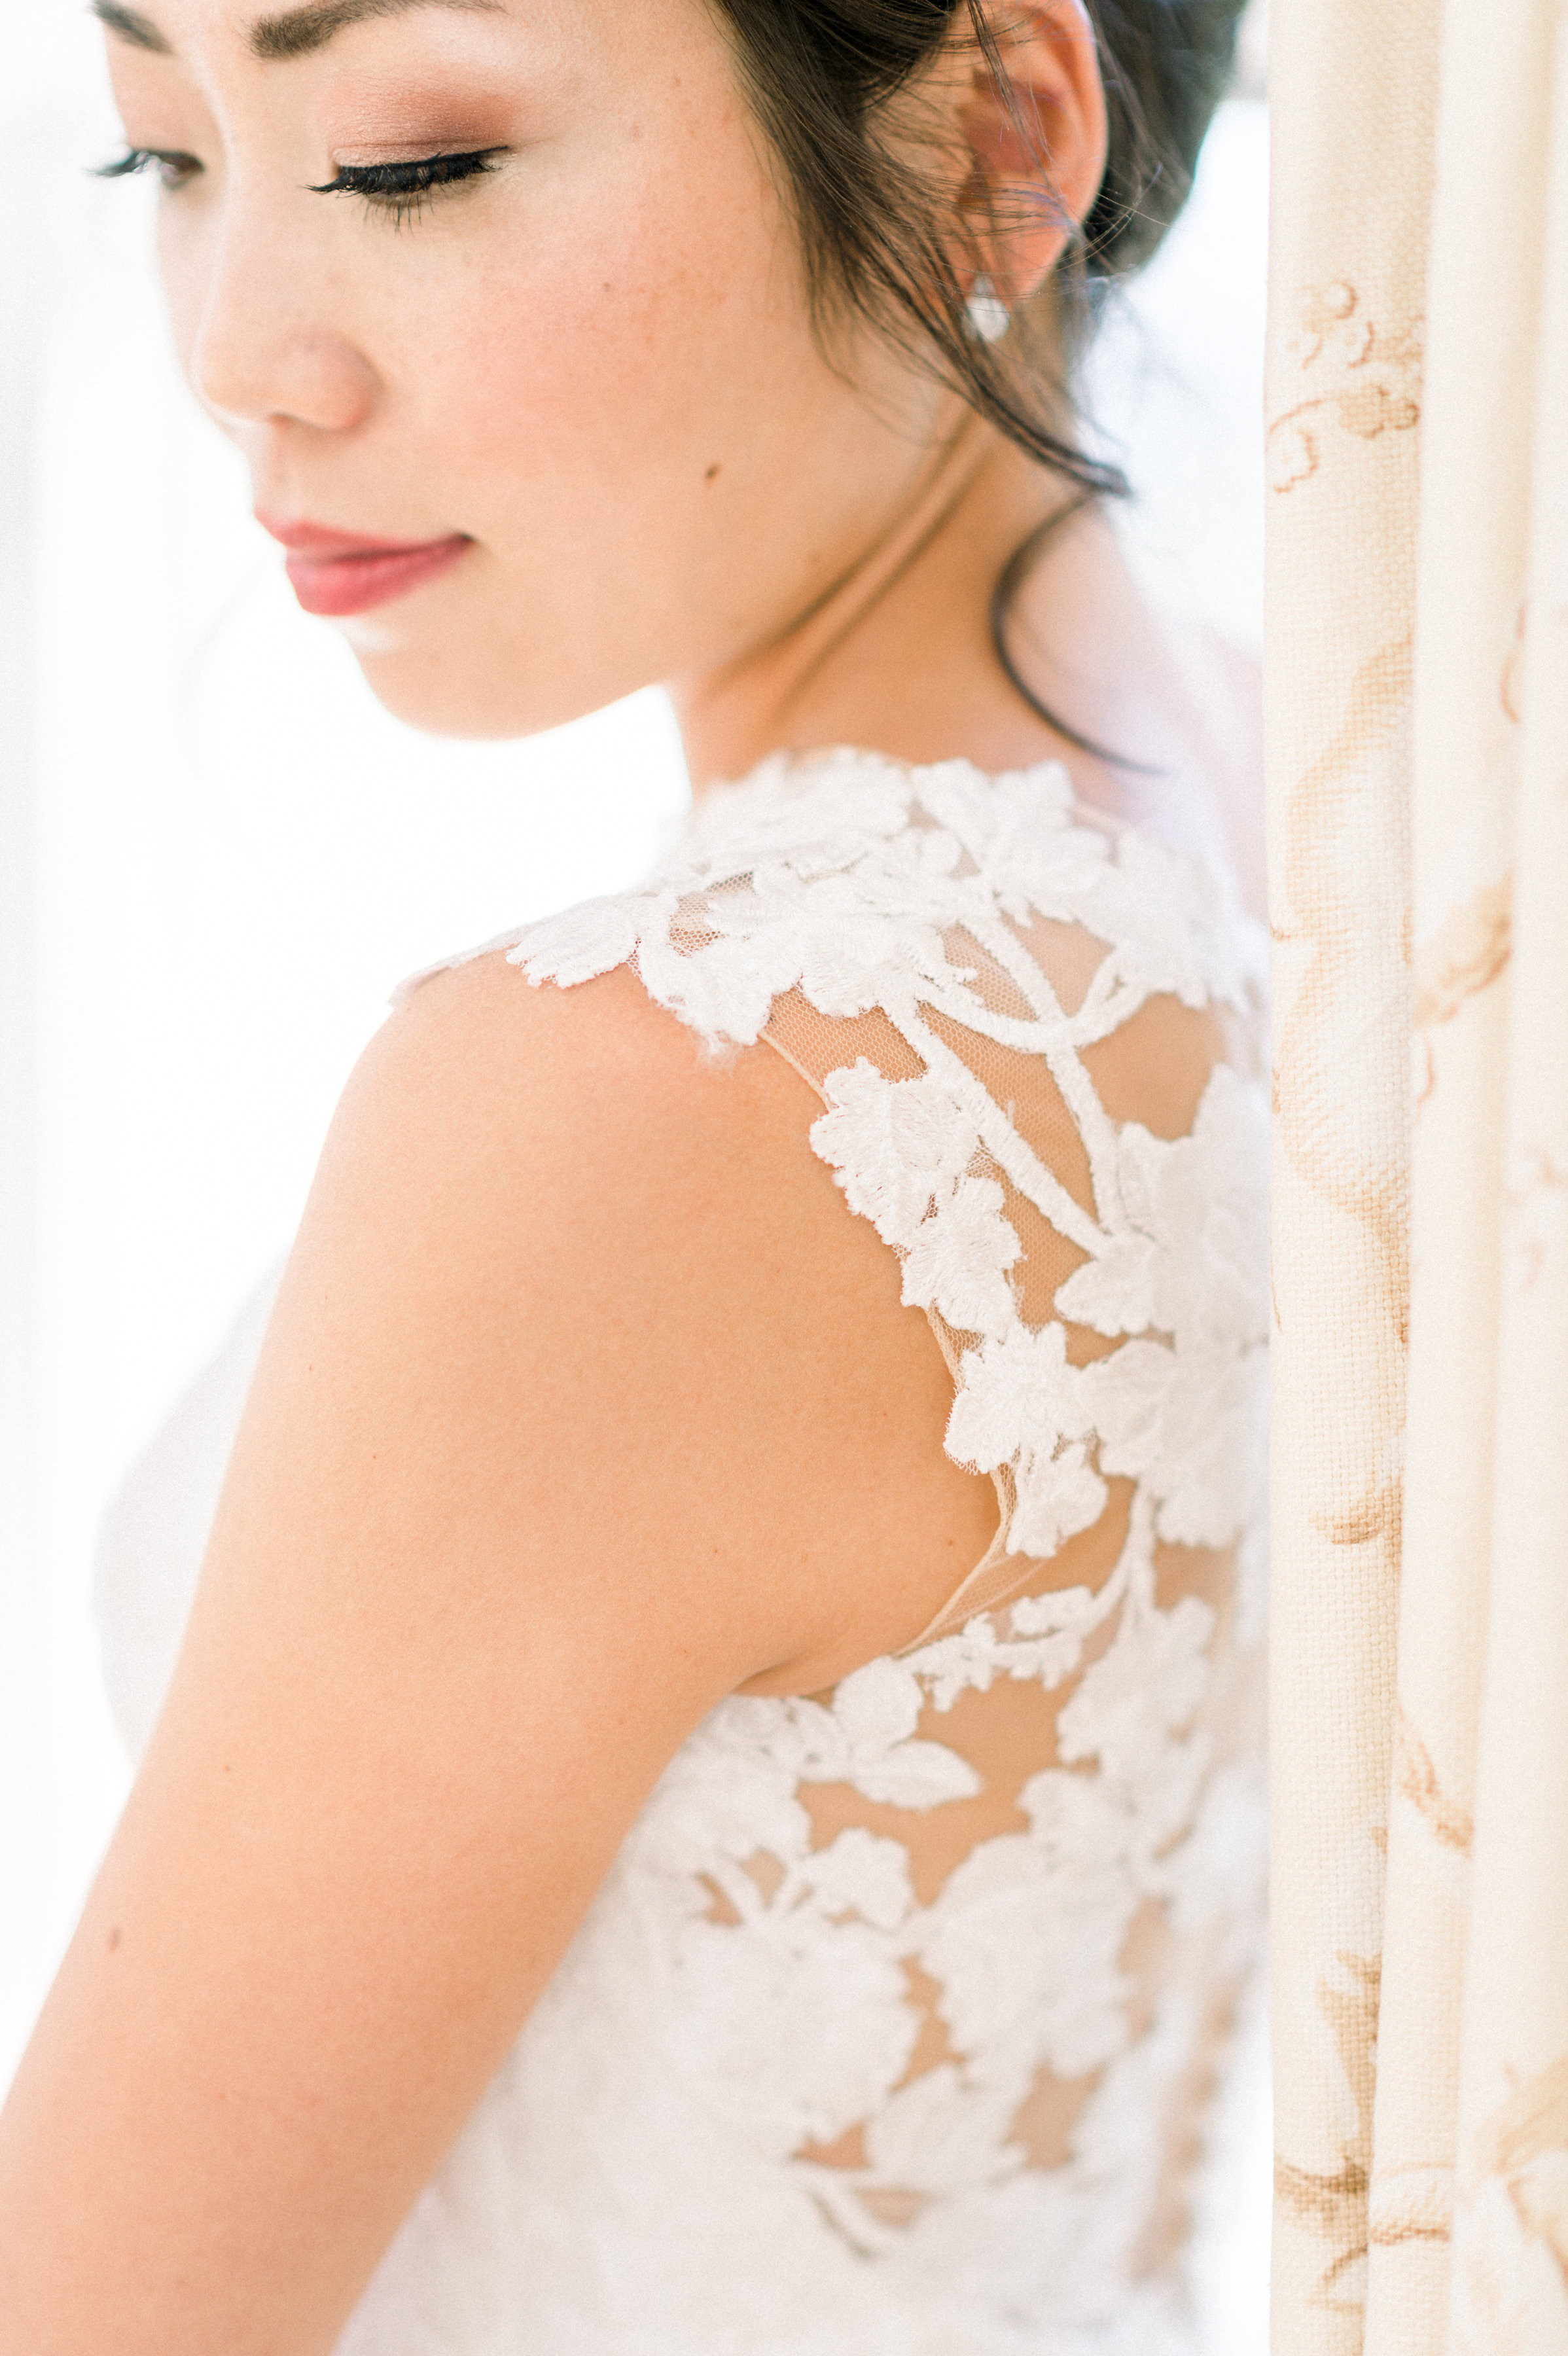 The stunning bride: Mamiko. Photo by Whitney Heard. Makeup by Maya Goldenberg. Hair by Shanna Layton for Maya Goldenberg, Eco-Beauty Professional.